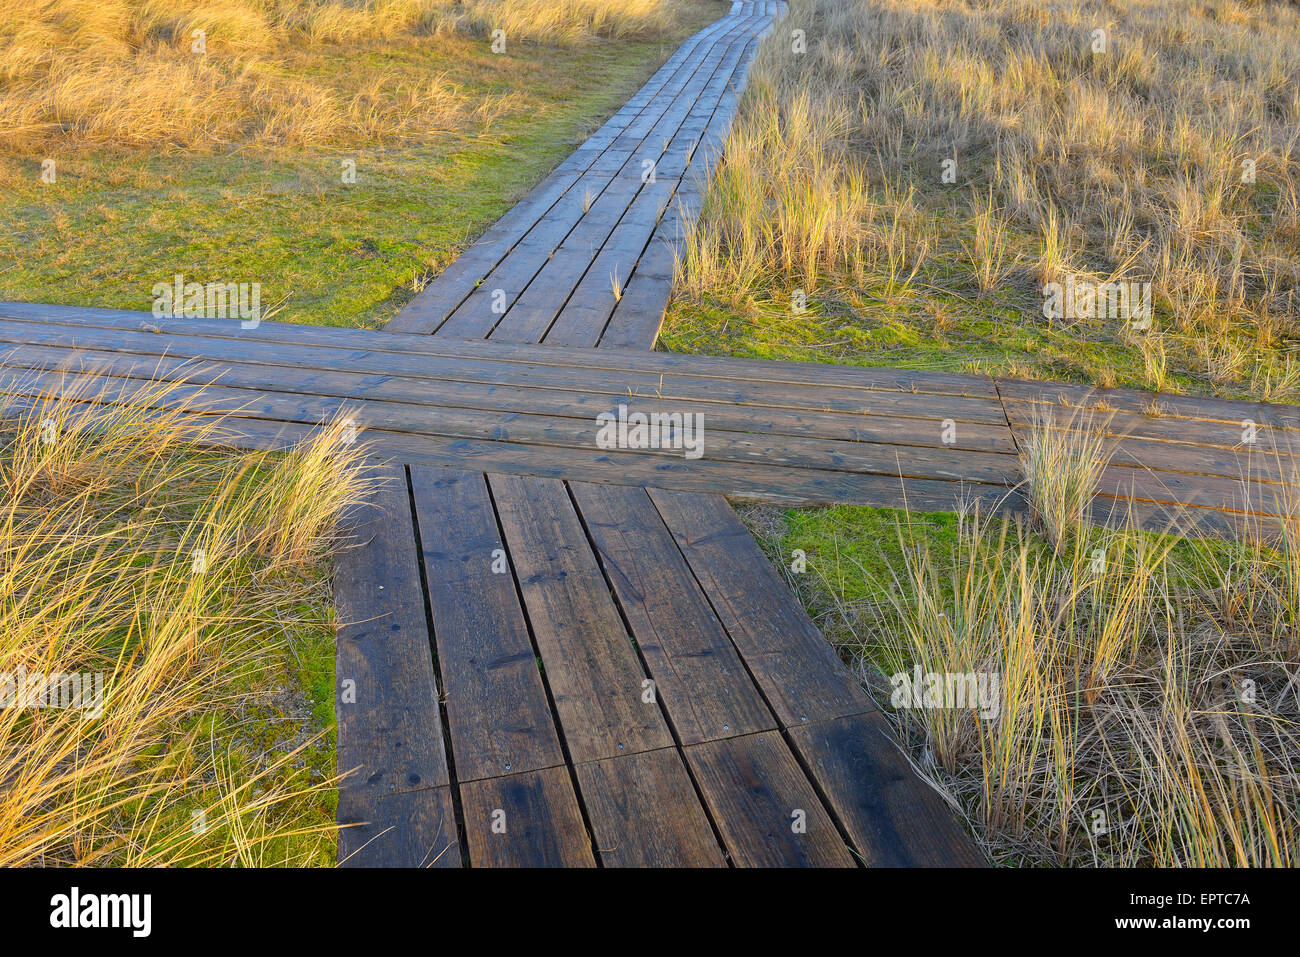 Crossing on Wooden Planks, Boardwalk Path between Dunes, Helgoland, North Sea, Island, Schleswig Holstein, Germany Stock Photo